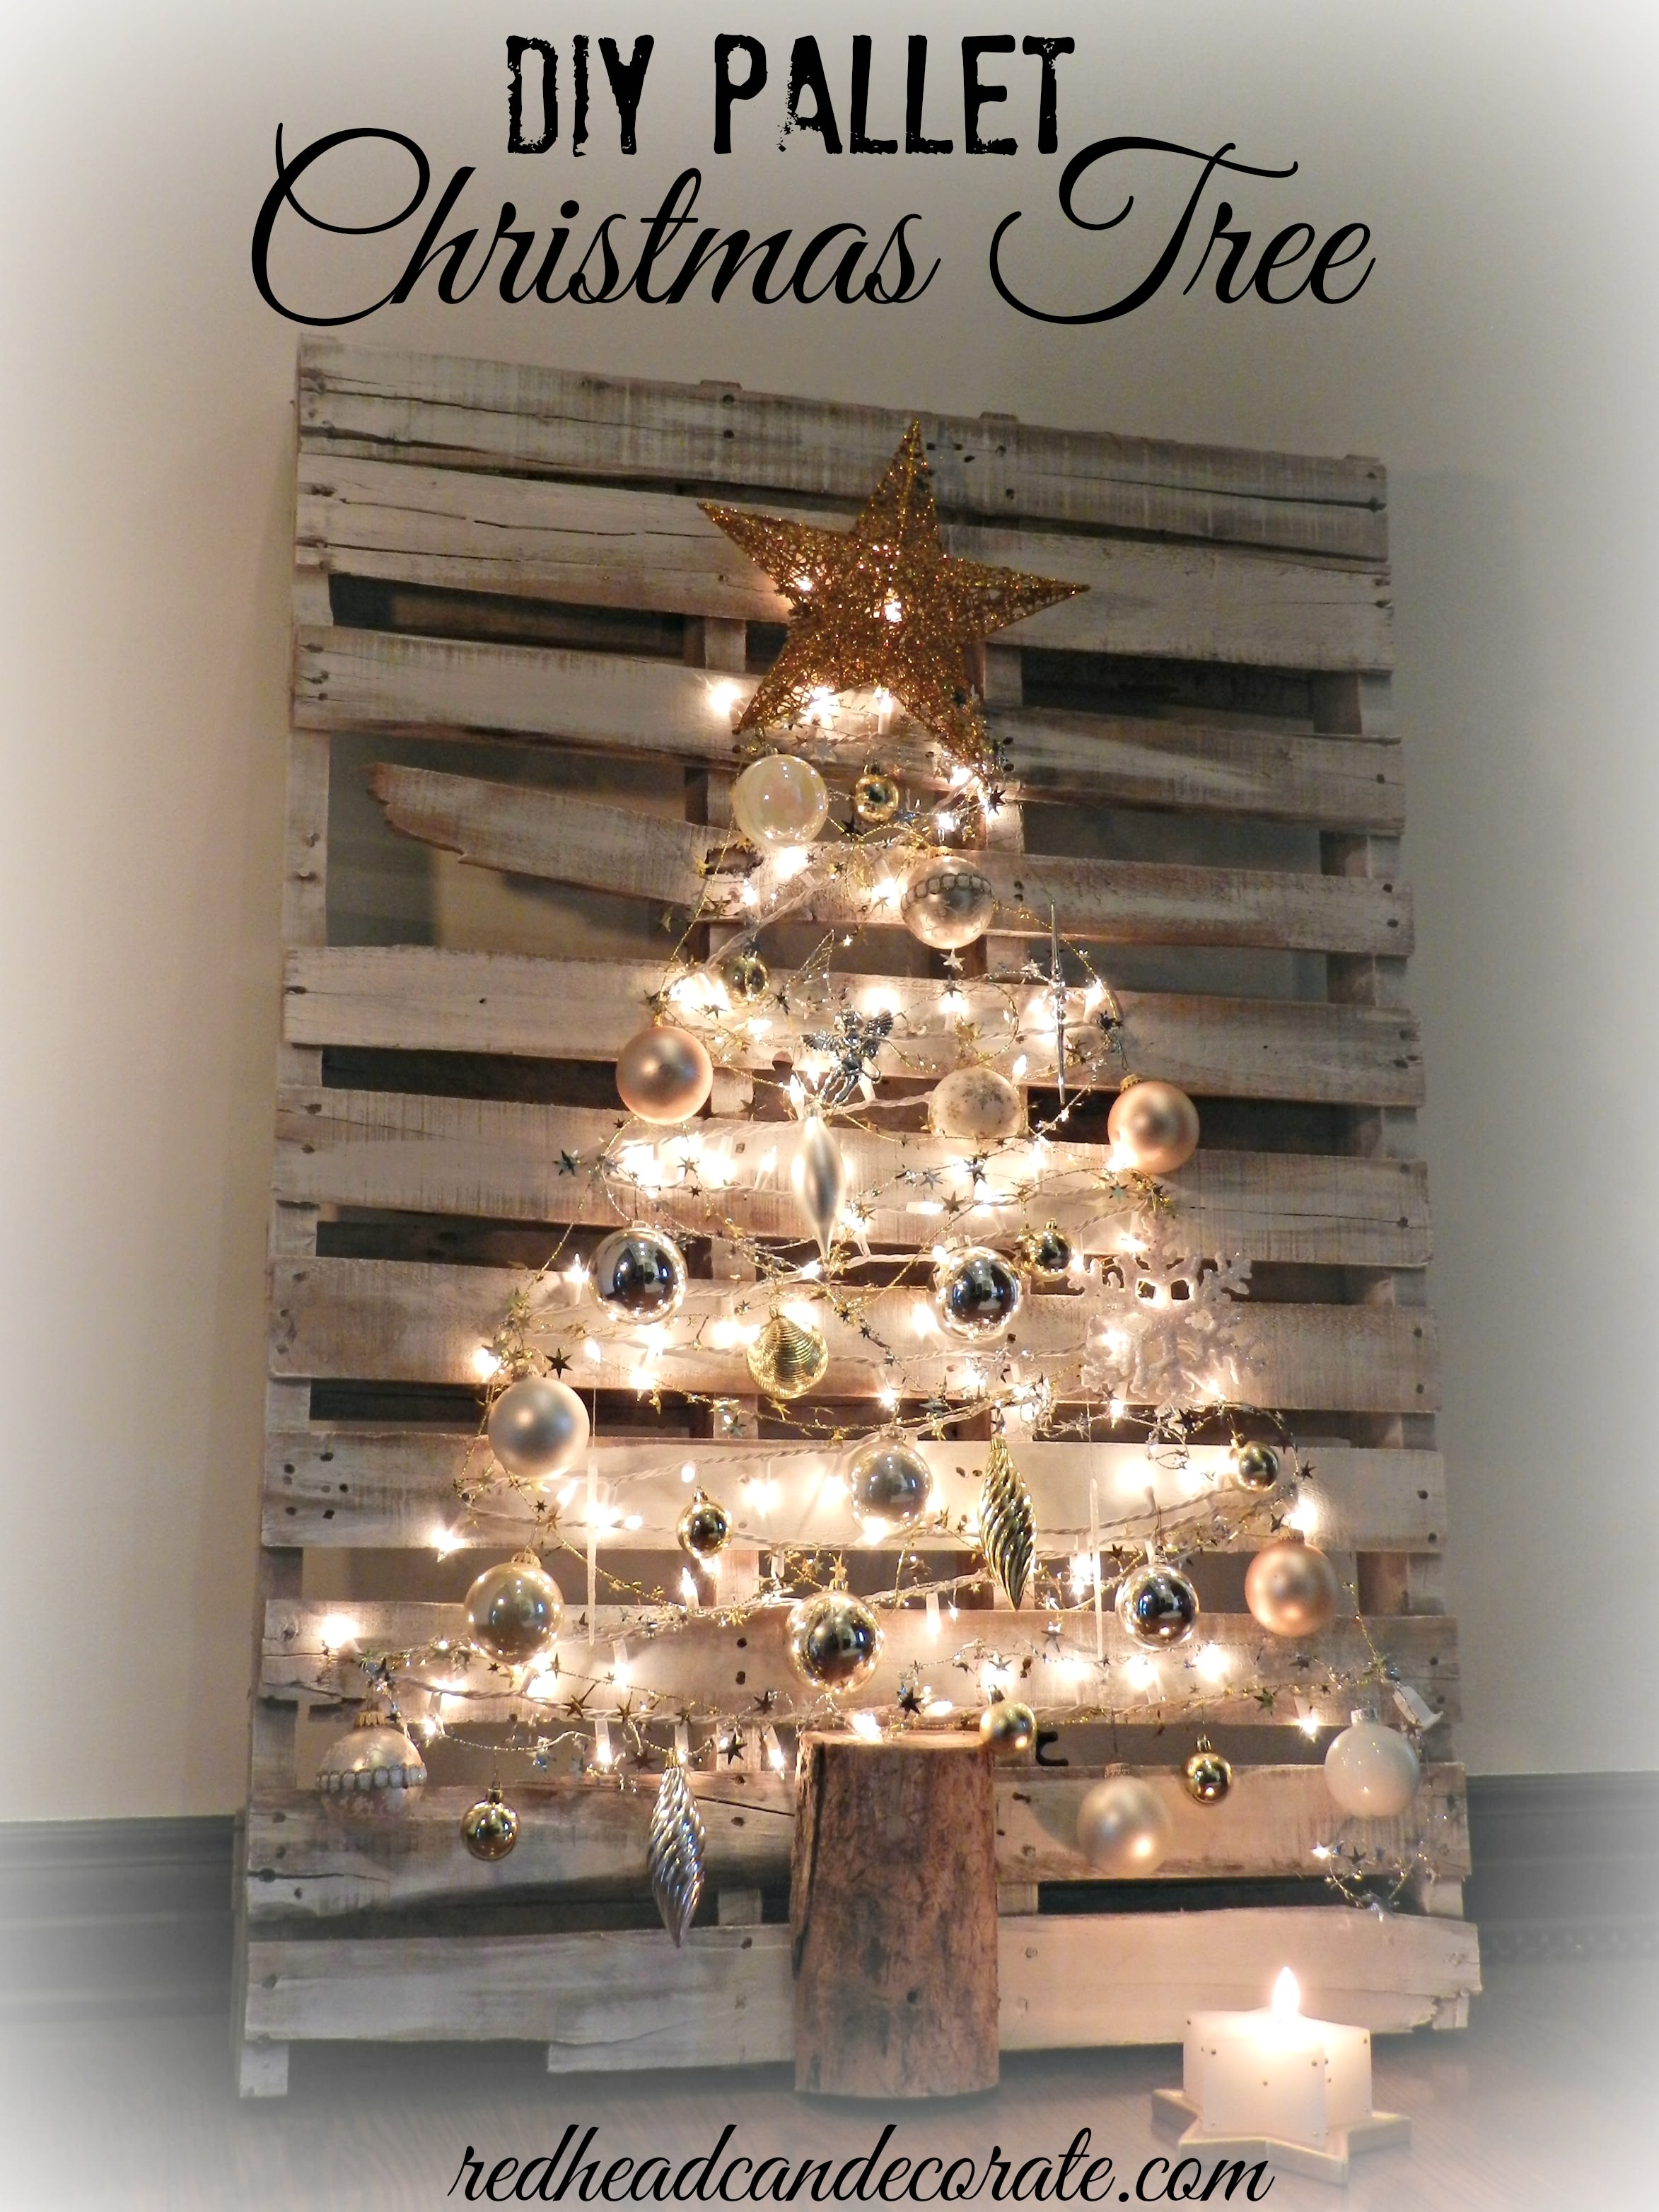 Wood Pallet Christmas Tree.Pallet Christmas Tree Redhead Can Decorate